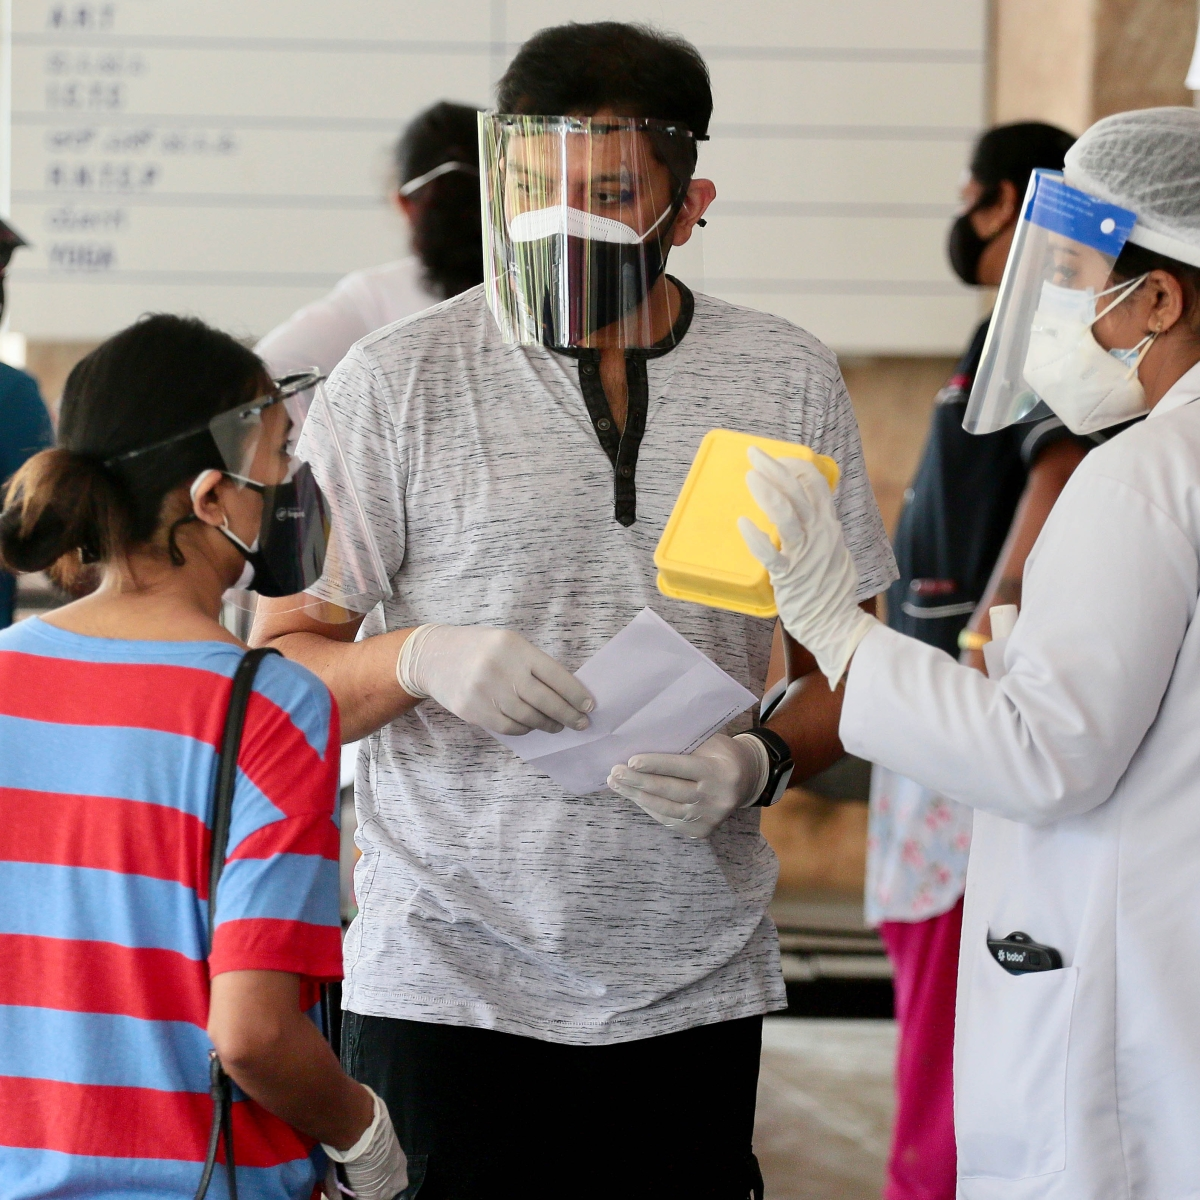 Karnataka govt to shift all COVID-19 vaccination centres from hospitals, PHCs to schools, colleges and other safer locations